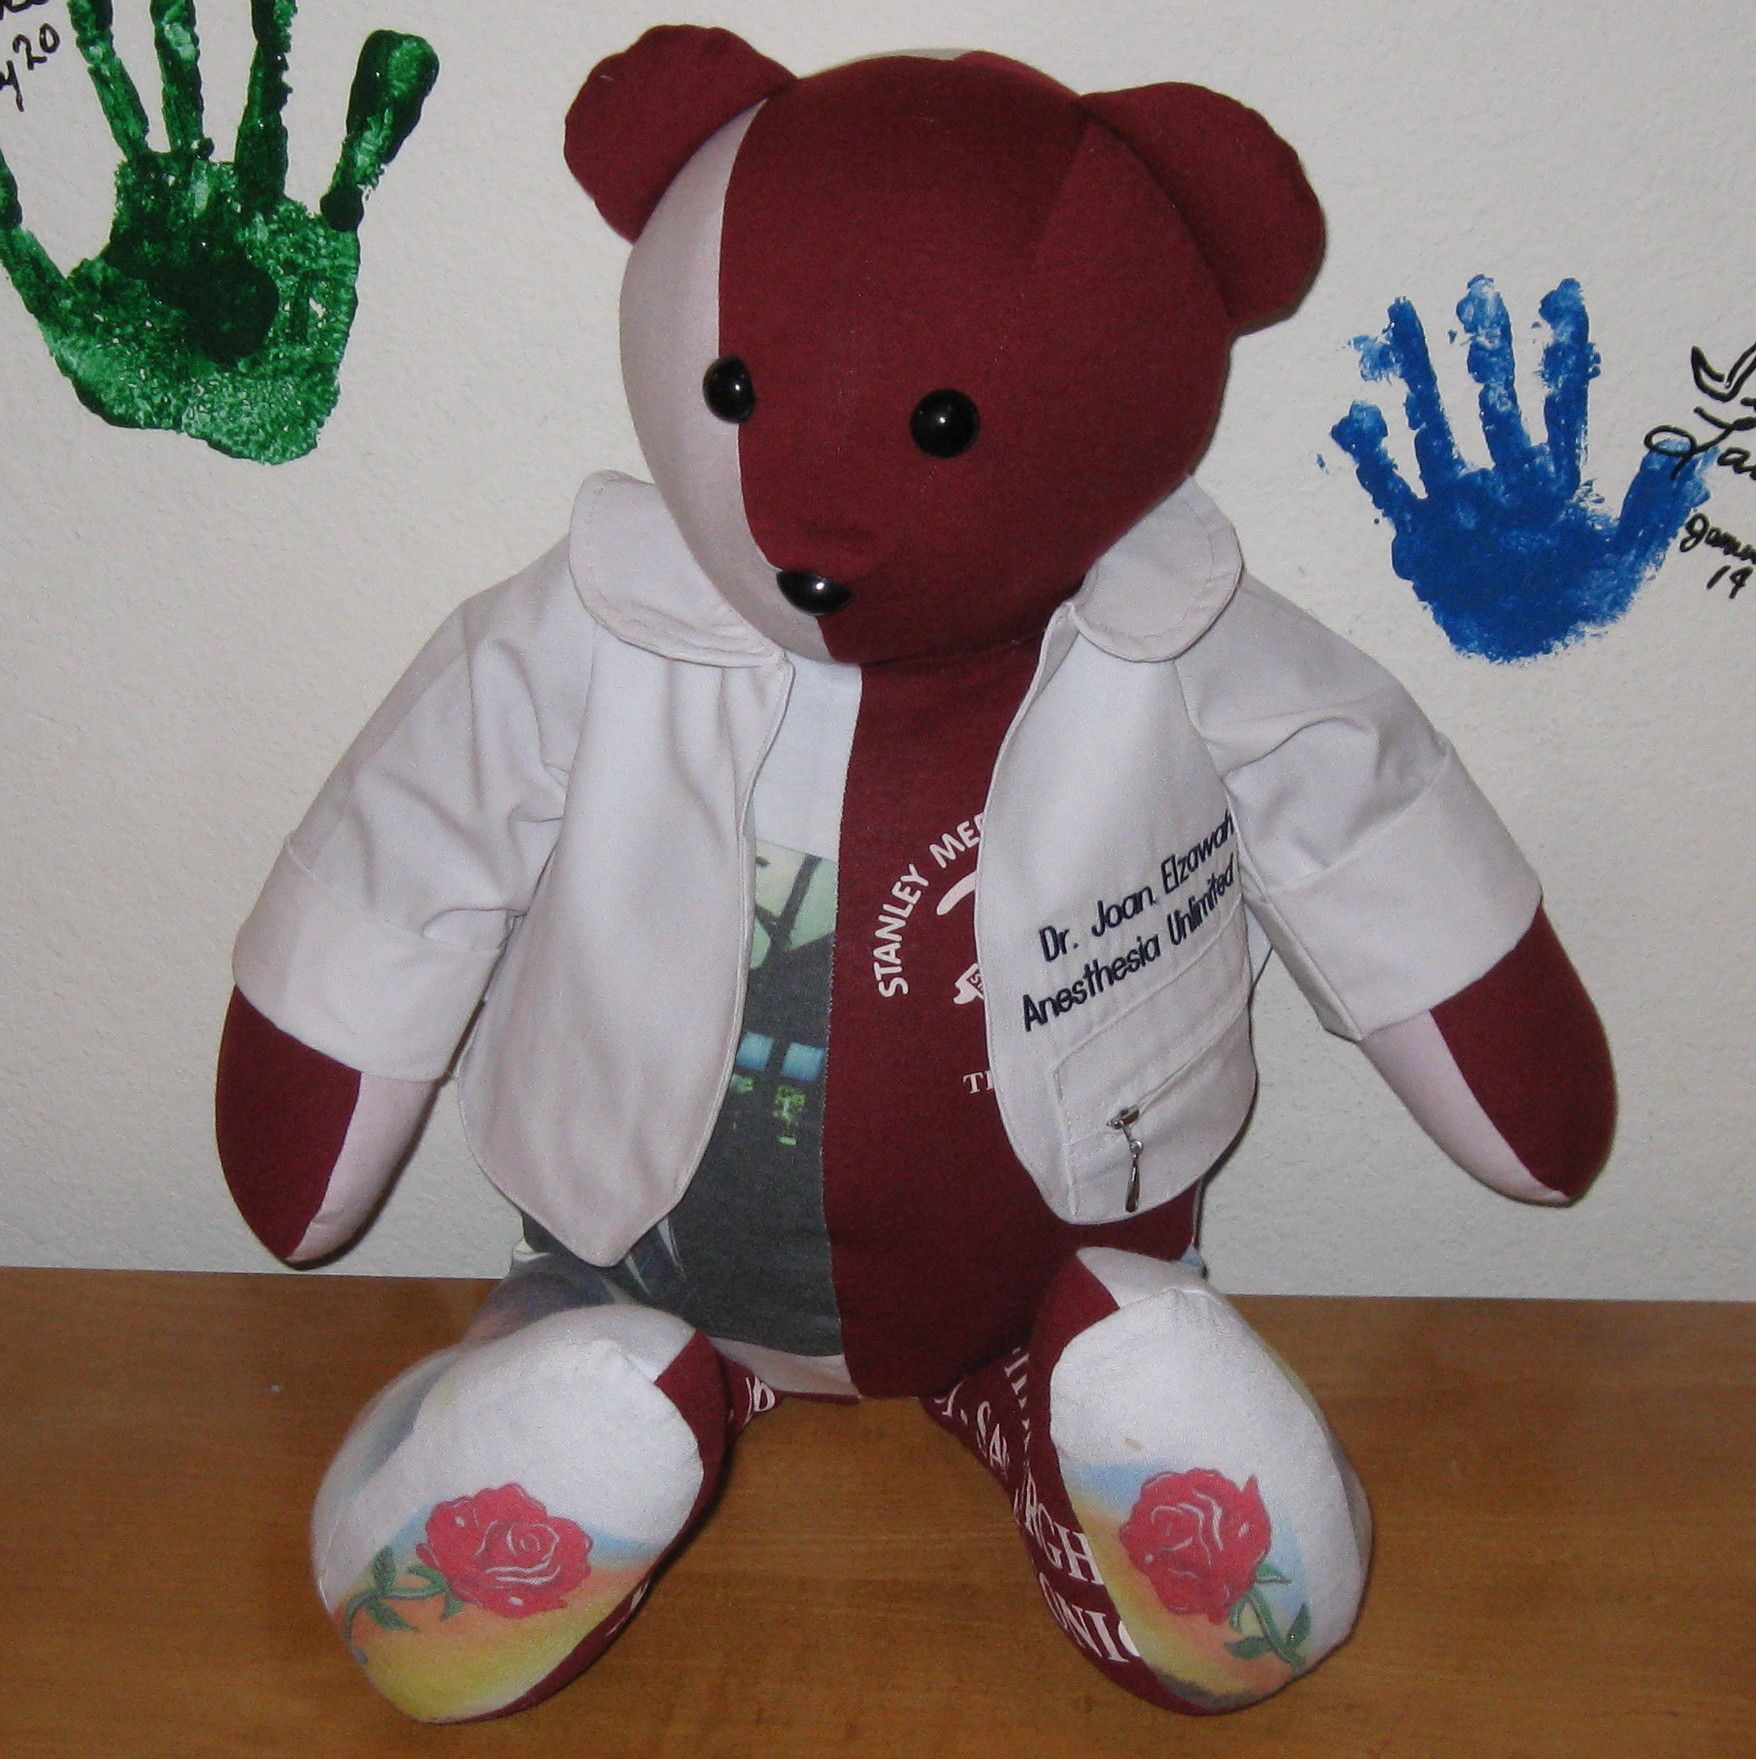 Doctor Bear was a memory bear made for a daughter from her father's medical coat and favorite t-shirts.